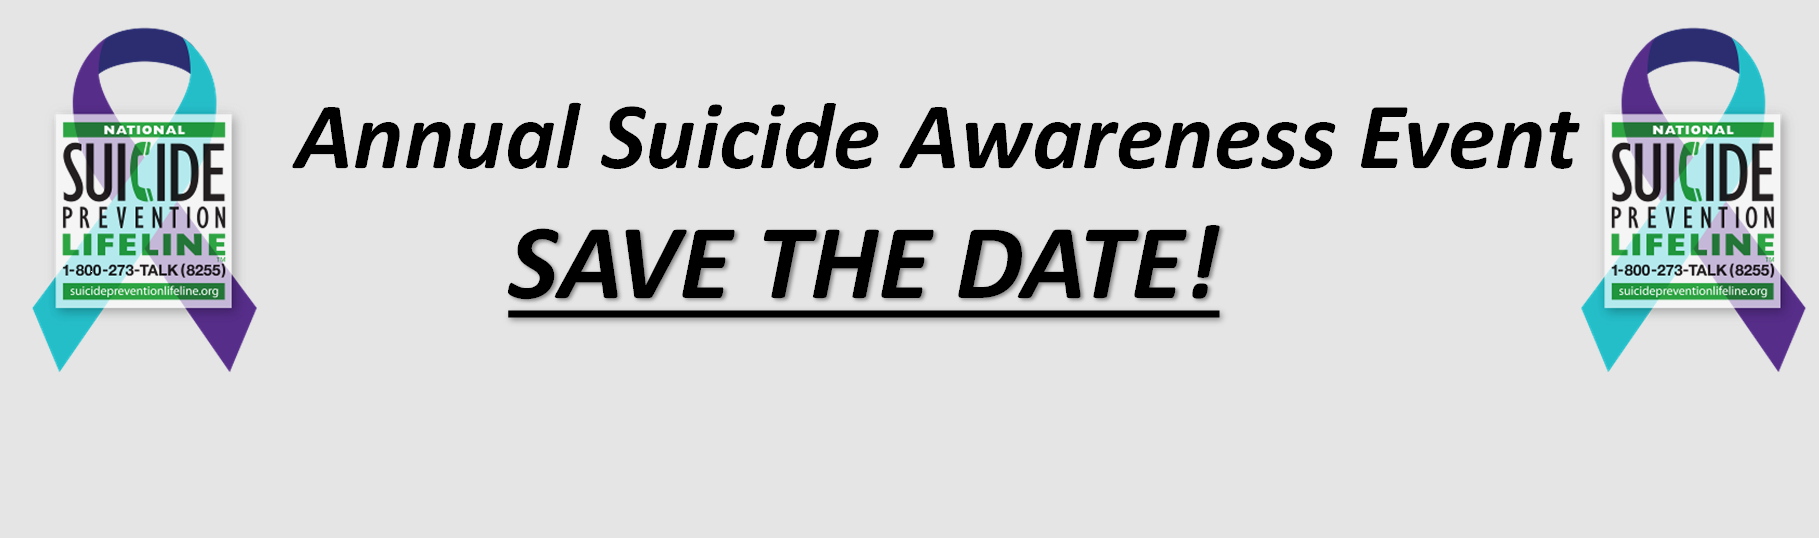 Annual Suicide Awareness Event